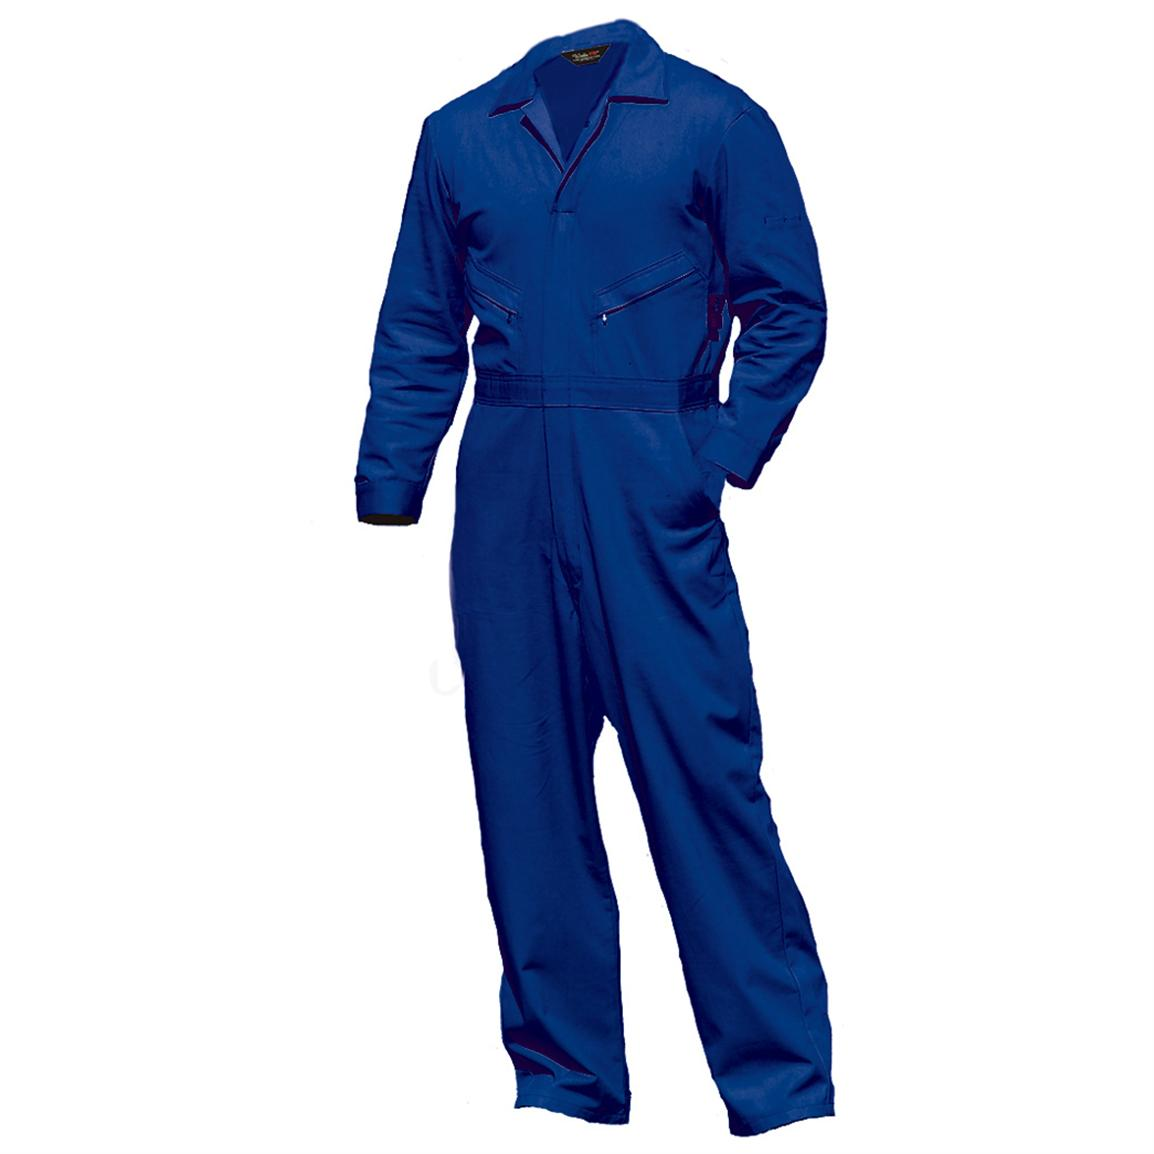 Walls Flame Resistant Industrial Coveralls, Royal